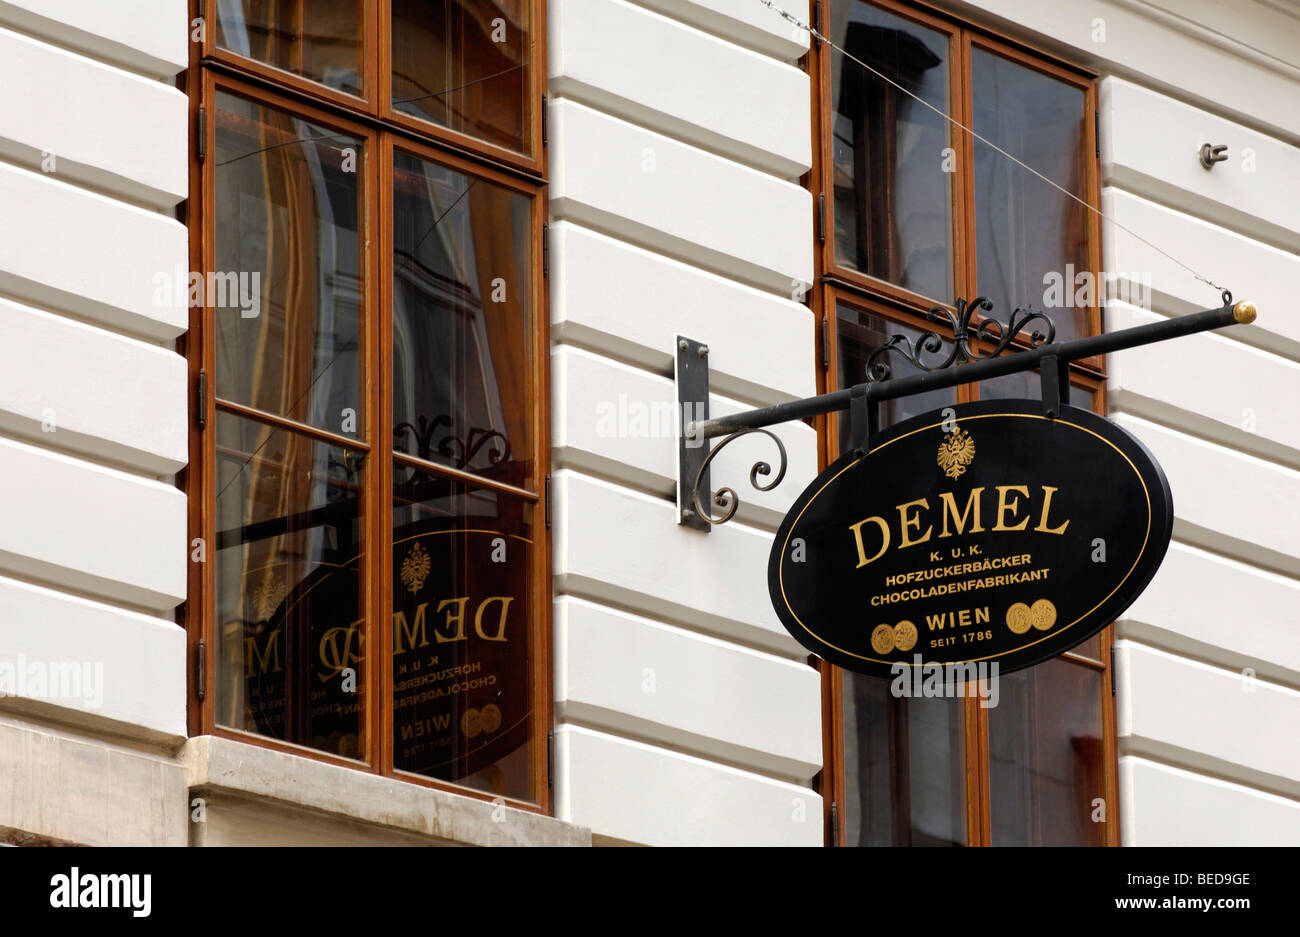 Business sign, K.u.K. Hofzuckerbaecker and Chocoladenfabrikant Demel, Imperial and Royal Court Confectionary Bakery - Stock Image